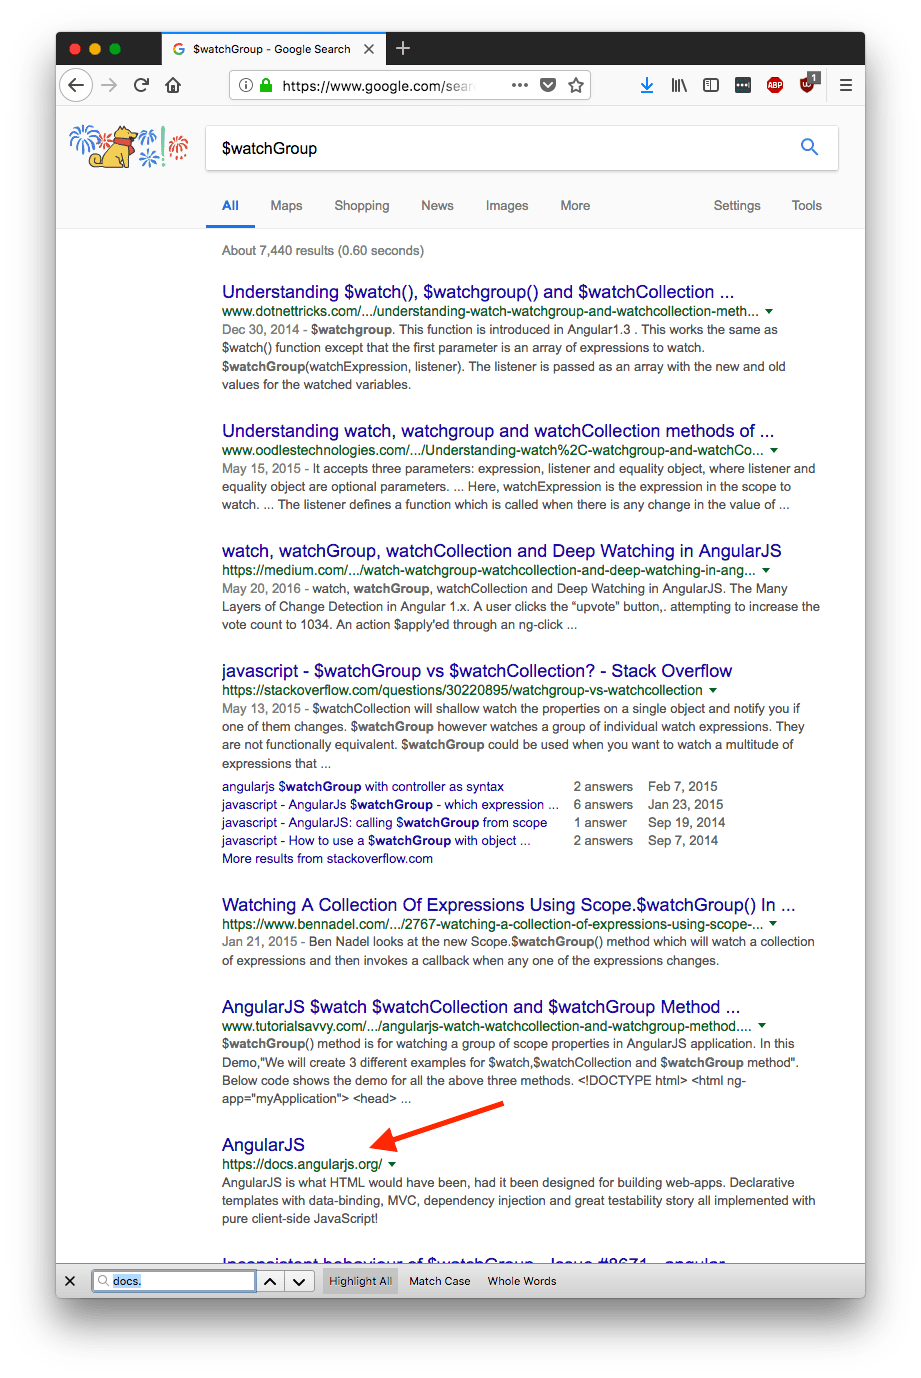 Angular 1 Documentation Disappeared from Google Search Results